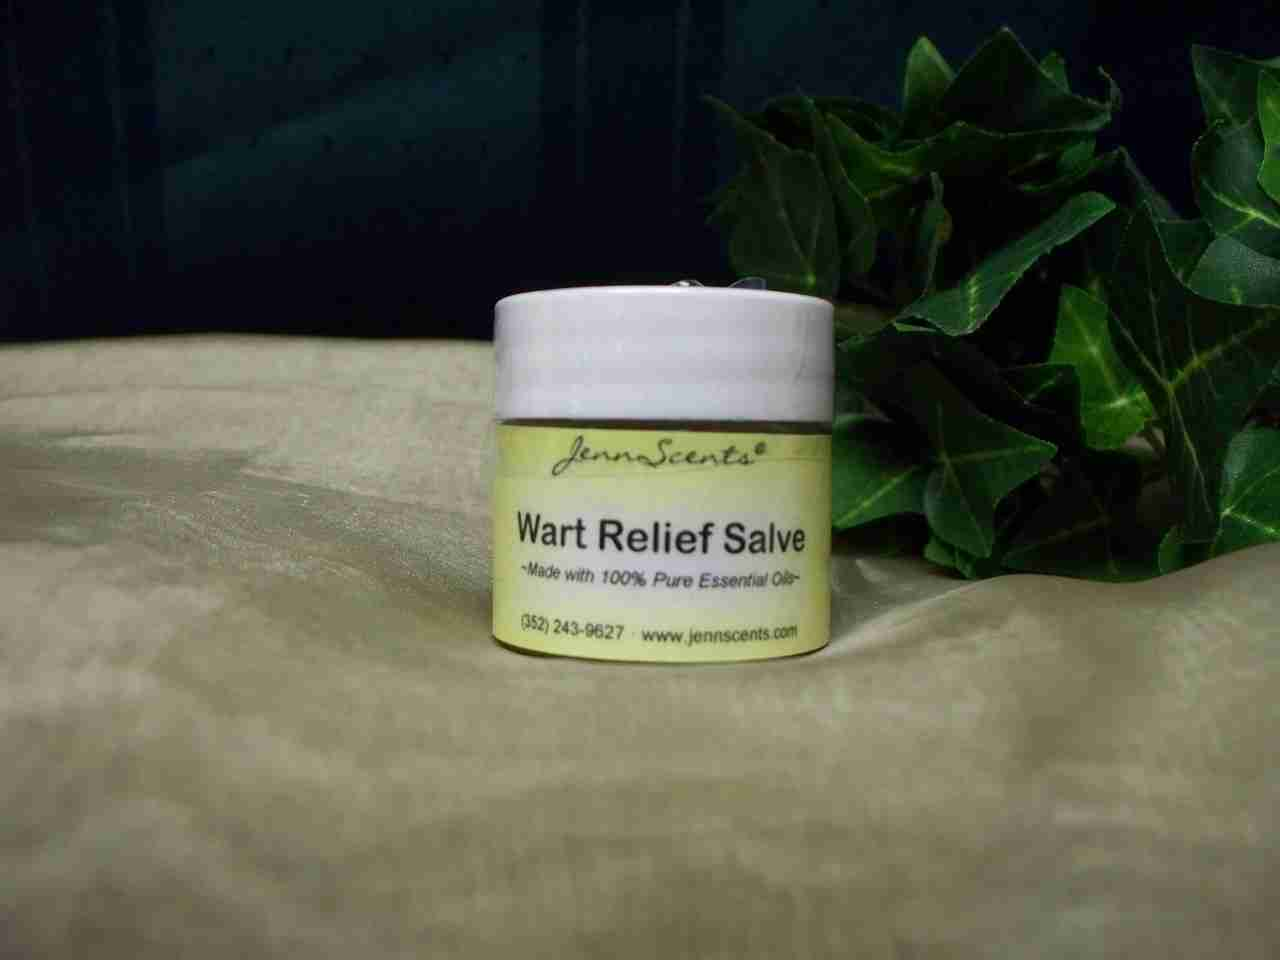 Wart Relief Salve